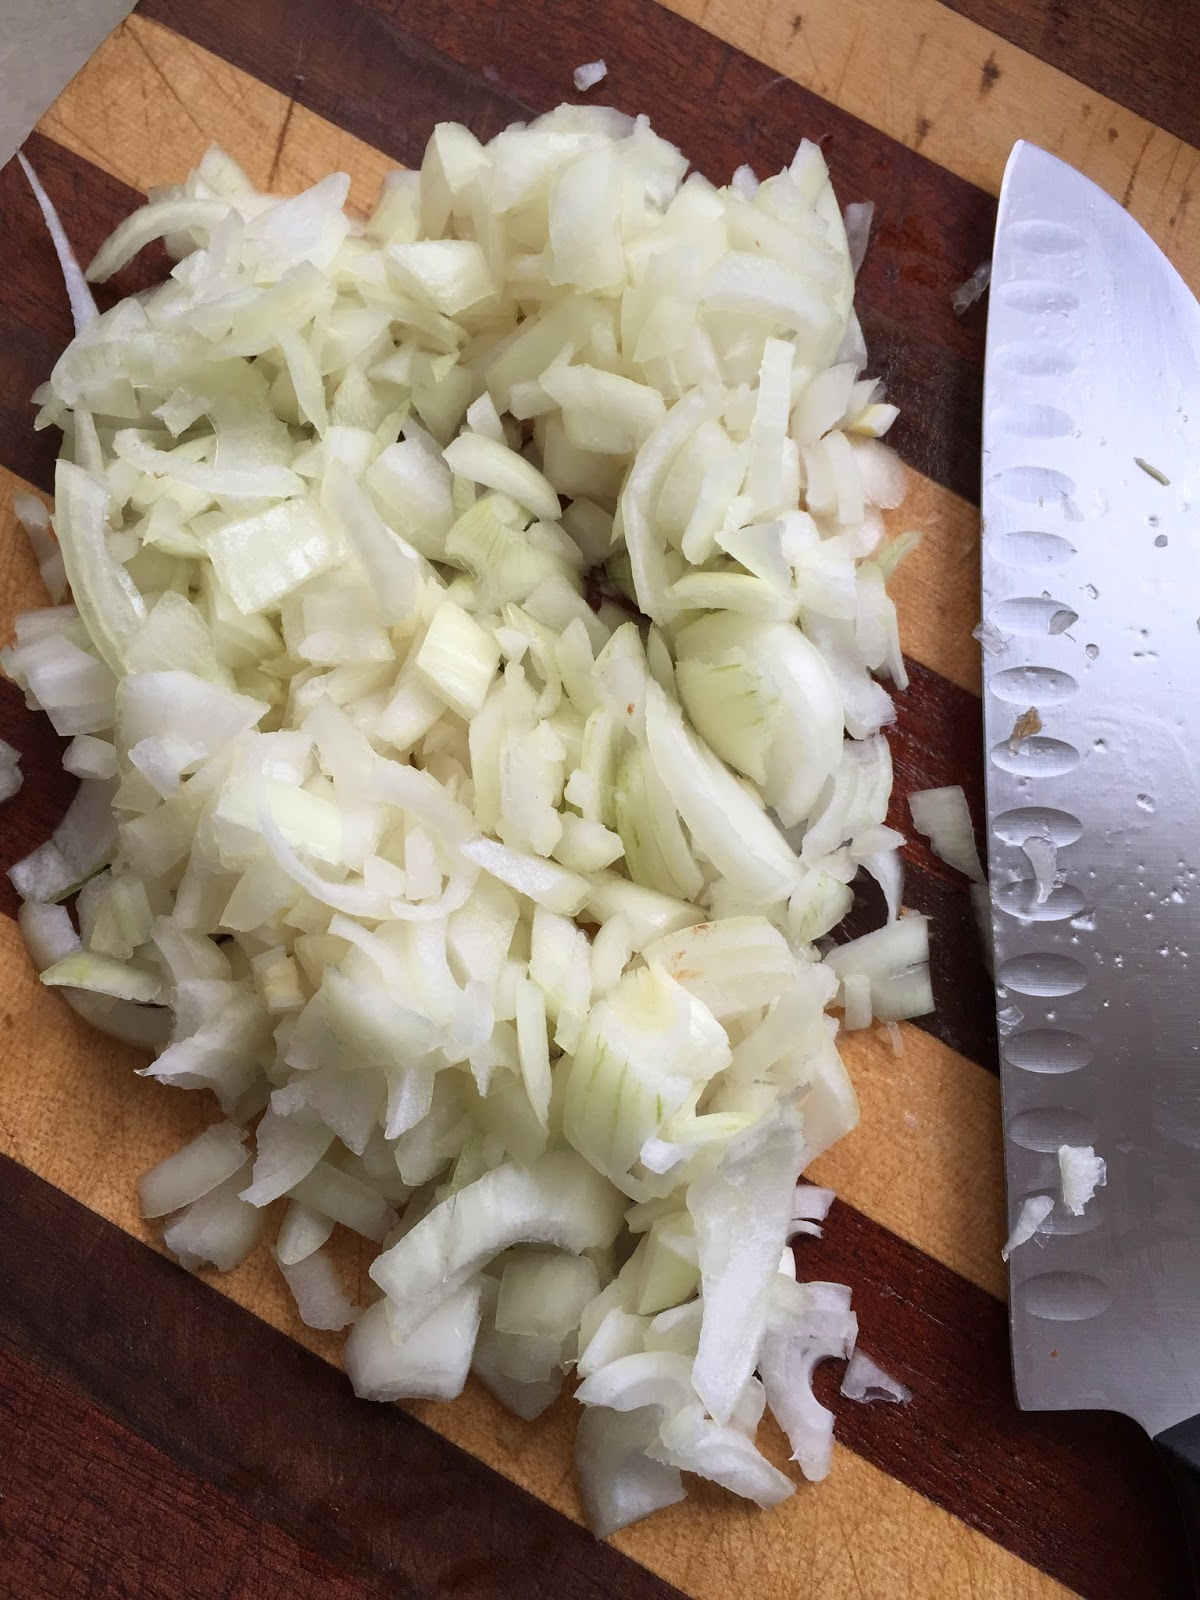 Chopped Onions on a Cutting Board with Knife Veega Blog